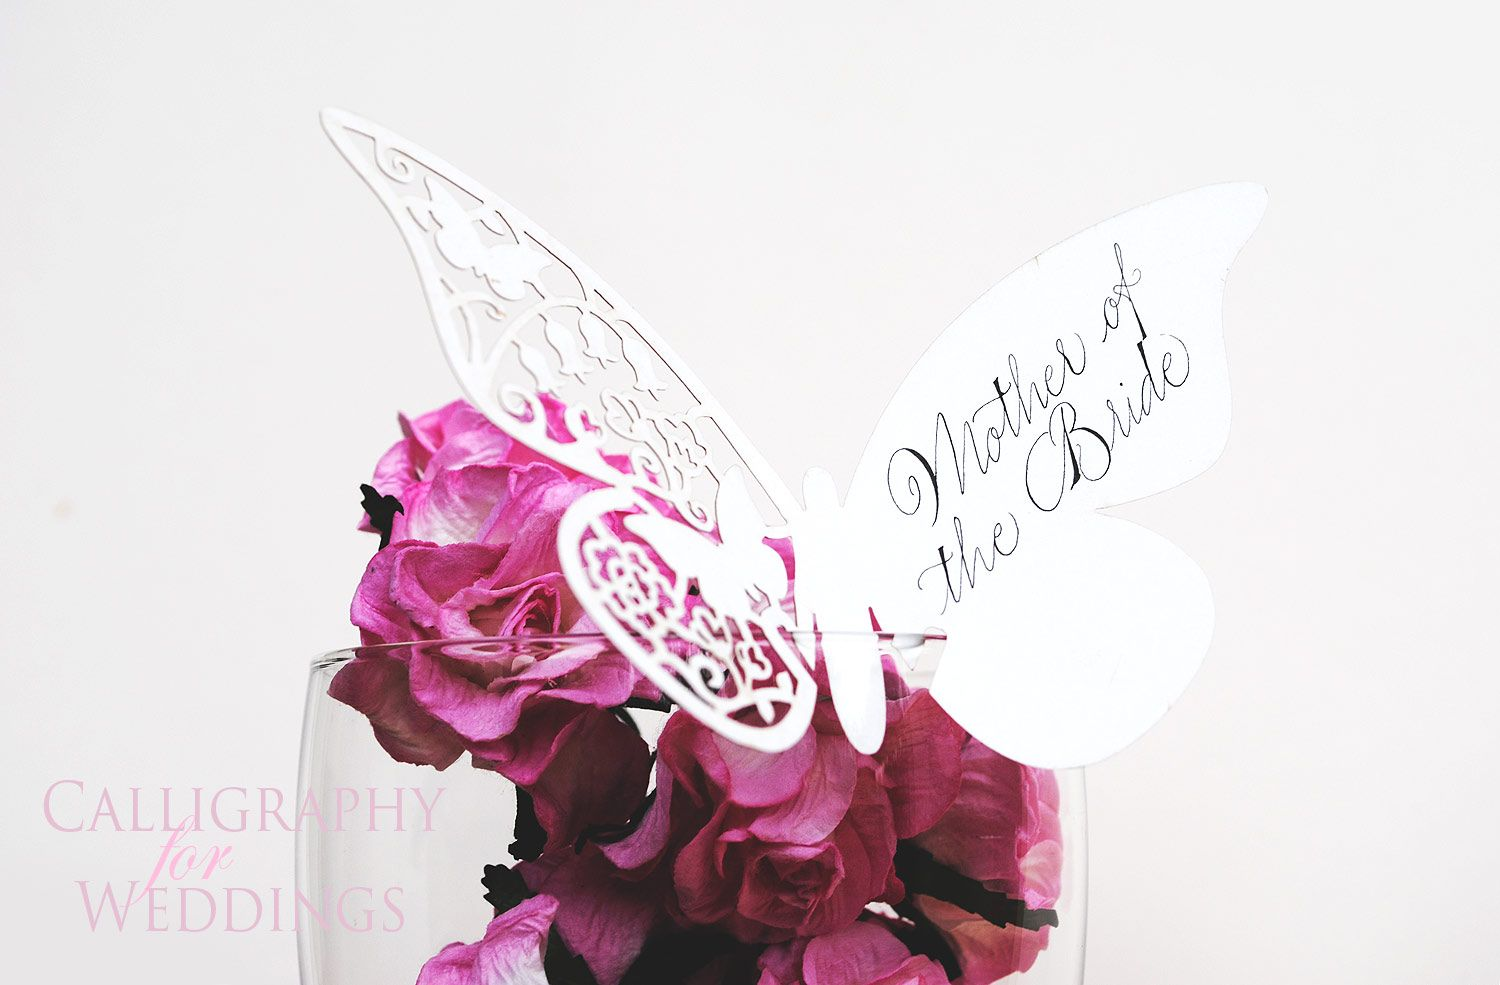 Calligraphy butterfly wedding place name - by Calligraphy-for-Weddings.com